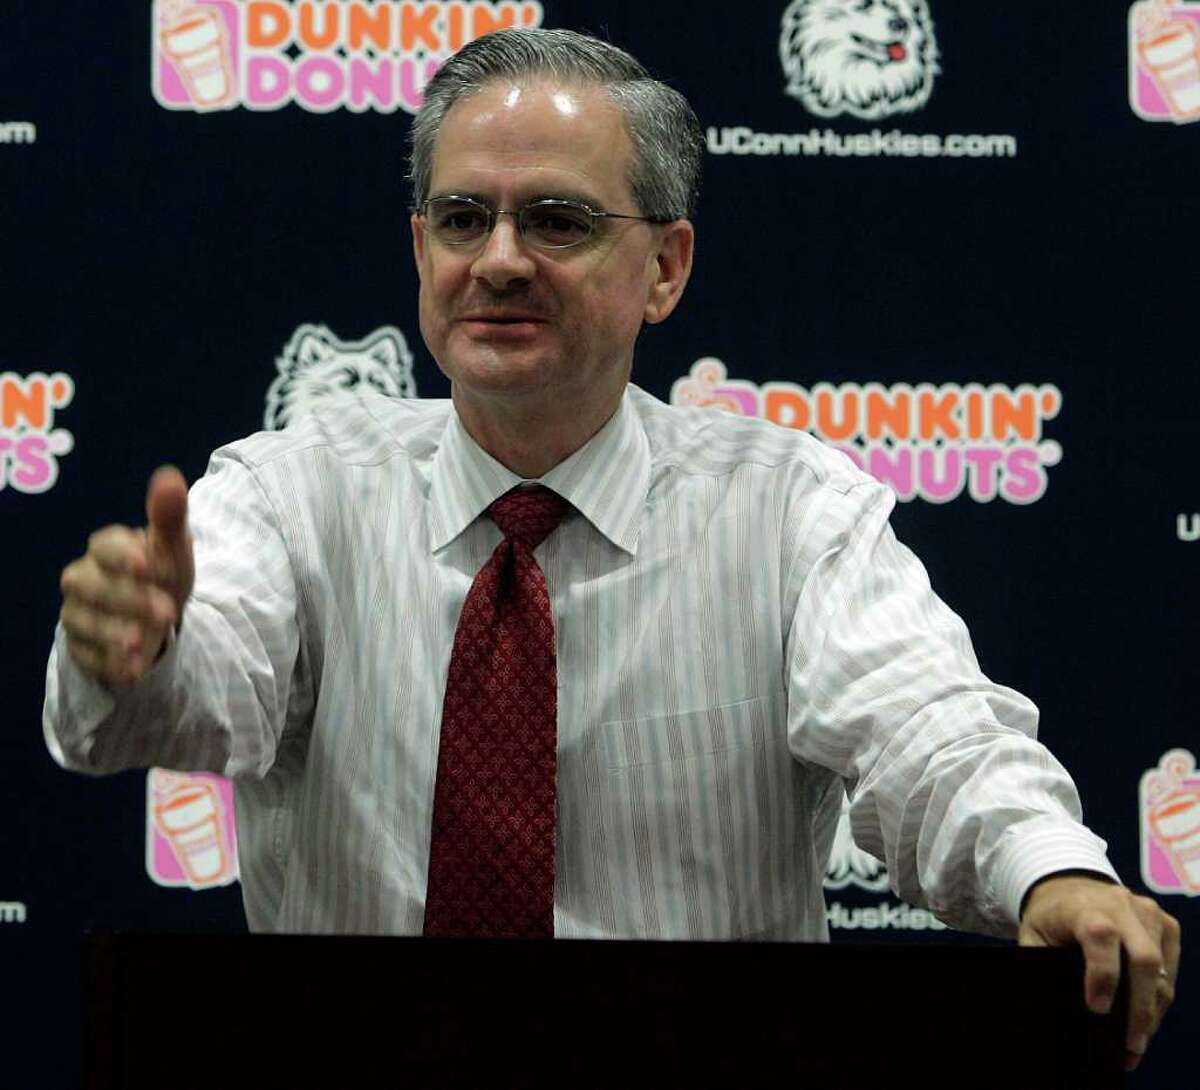 University of Connecticut Director of Athletics Jeff Hathaway answers a question during a news conference on the UConn campus at Storrs, Conn., Tuesday, Sept. 11, 2007. (AP Photo/Bob Child)